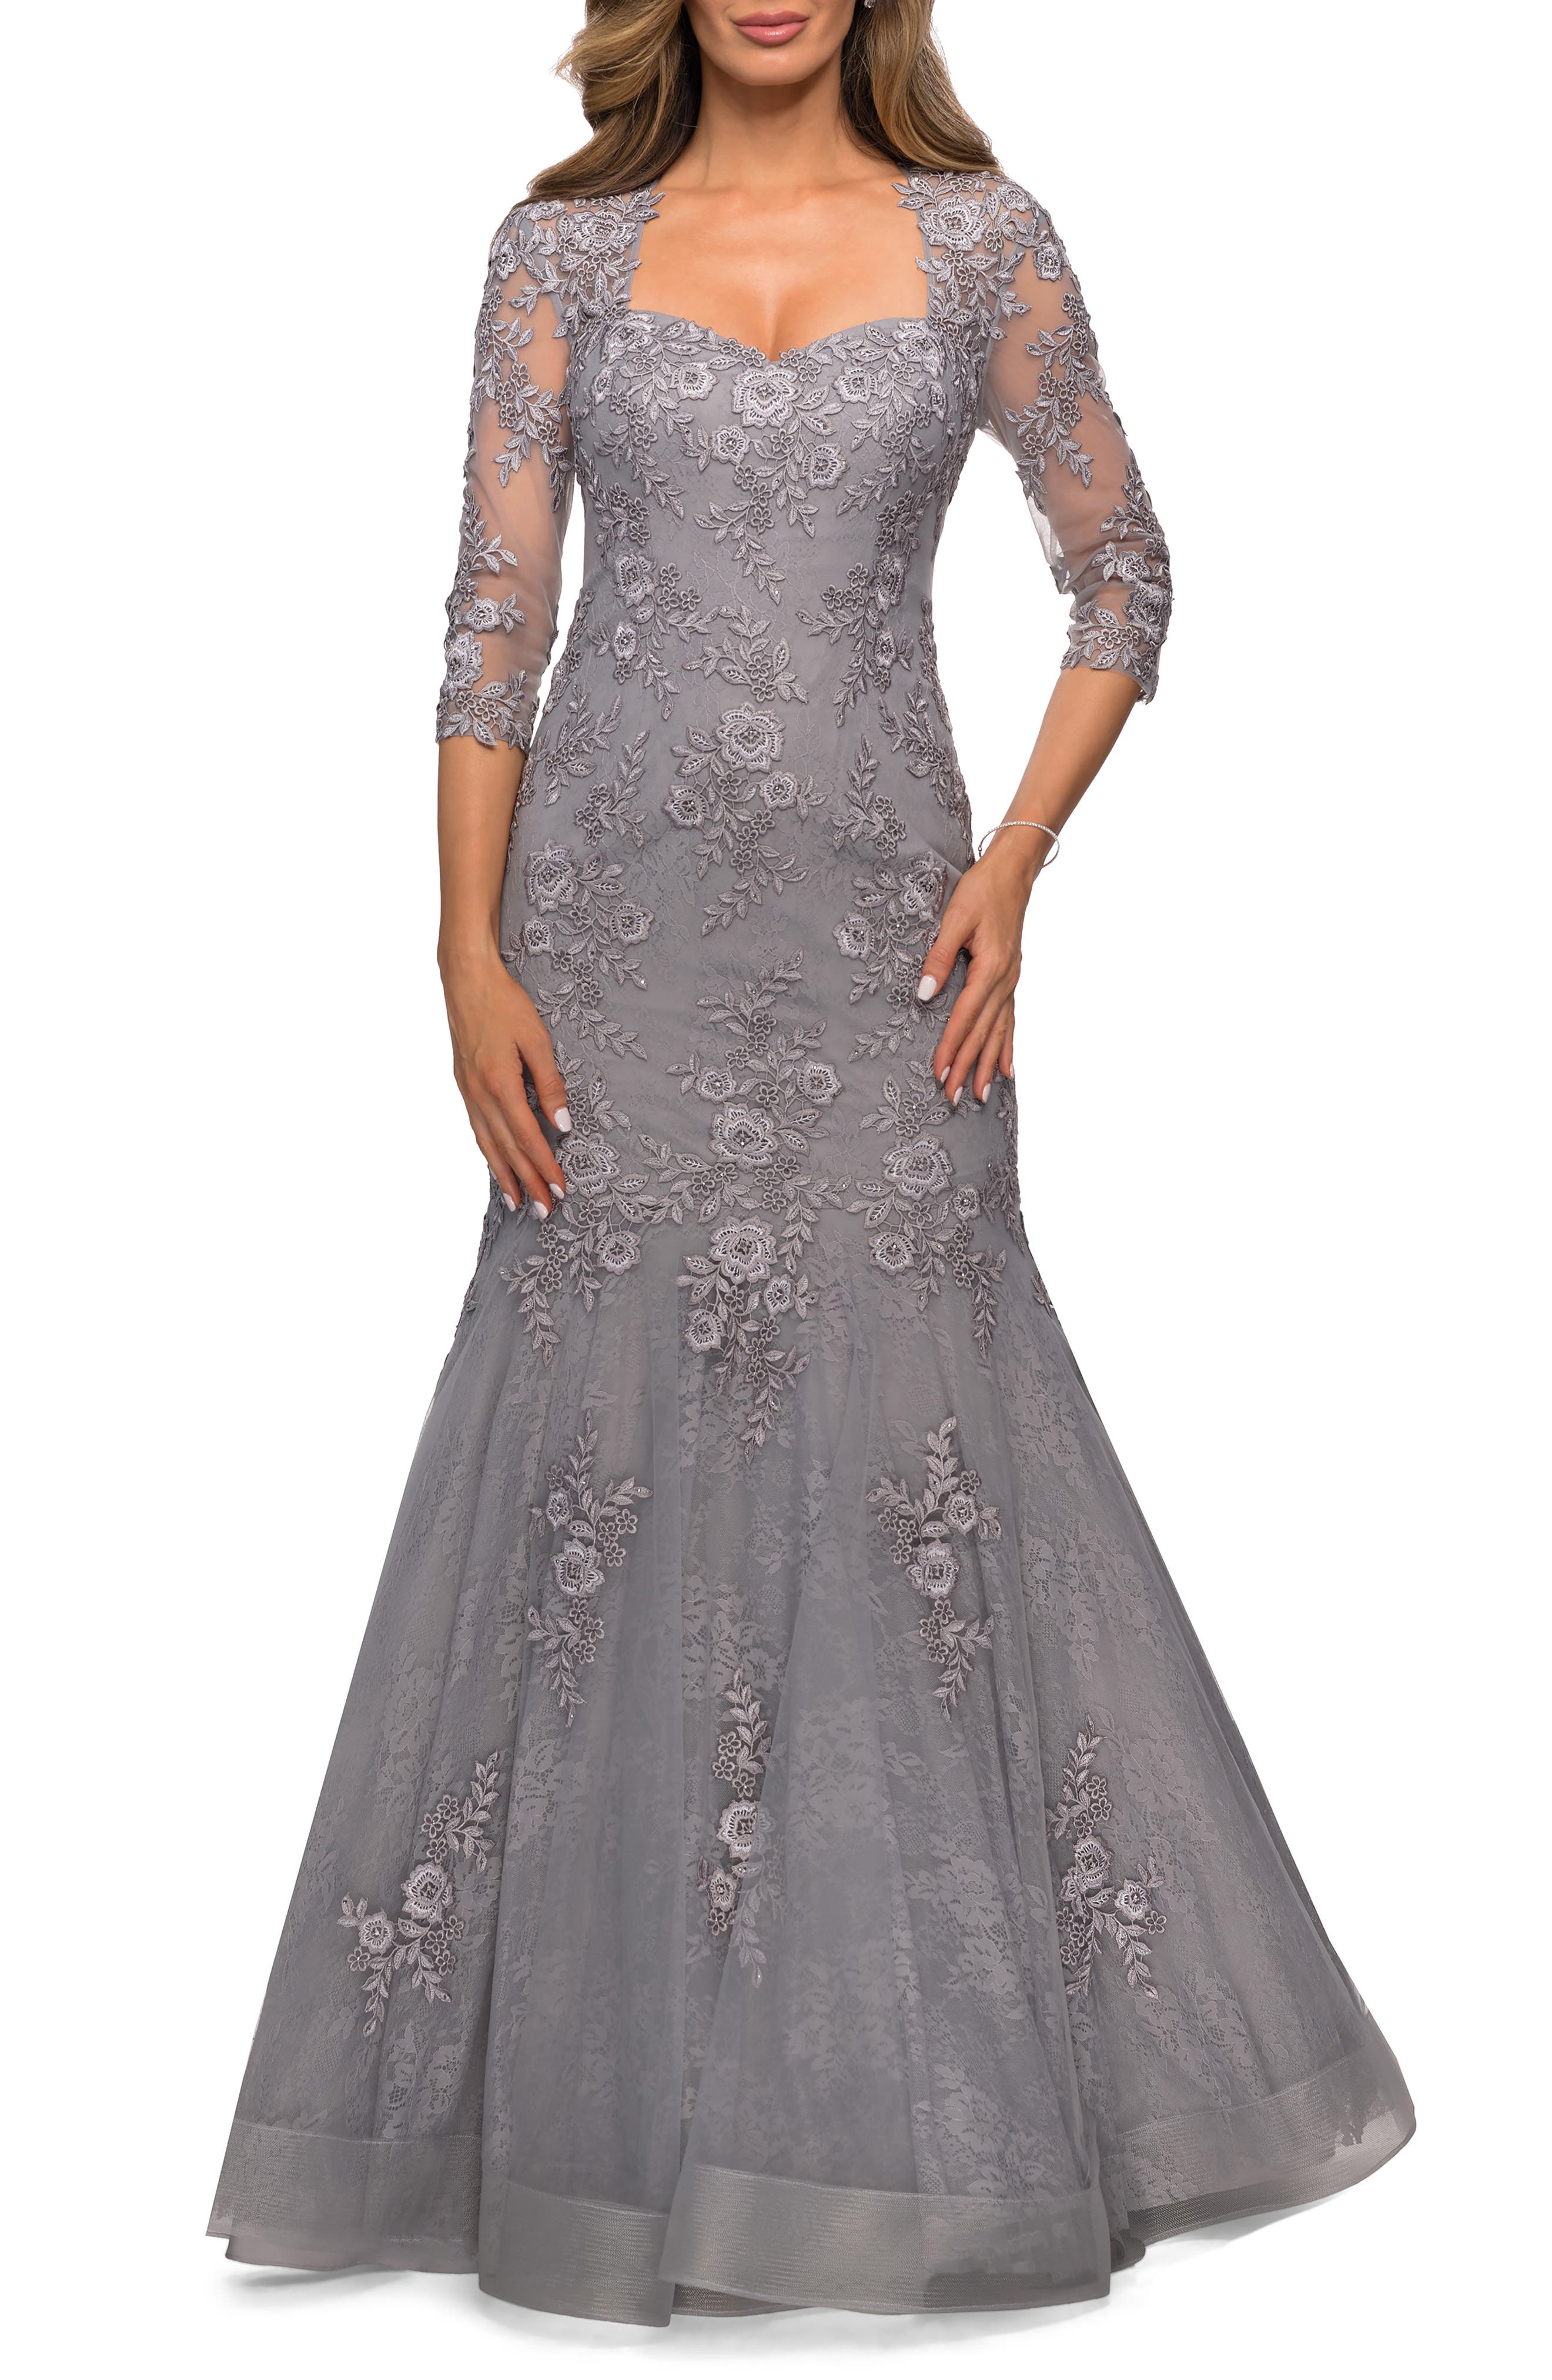 Vintage Prom Dresses, Homecoming Dress Womens La Femme Floral Lace  Tulle Mermaid Gown $418.60 AT vintagedancer.com